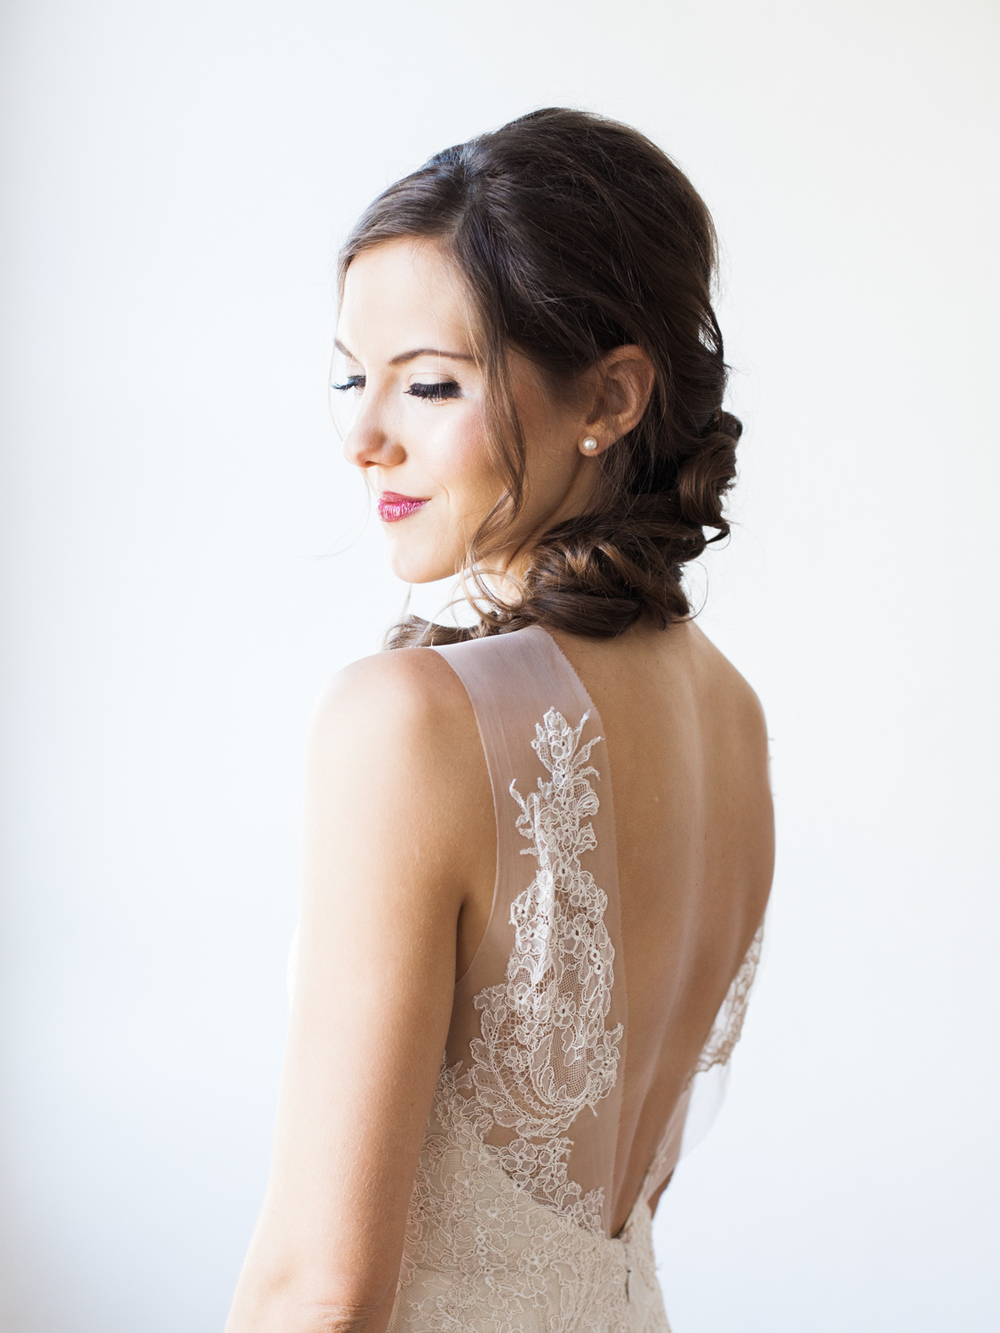 Bridal Beauty With Tracy Melton Artistry